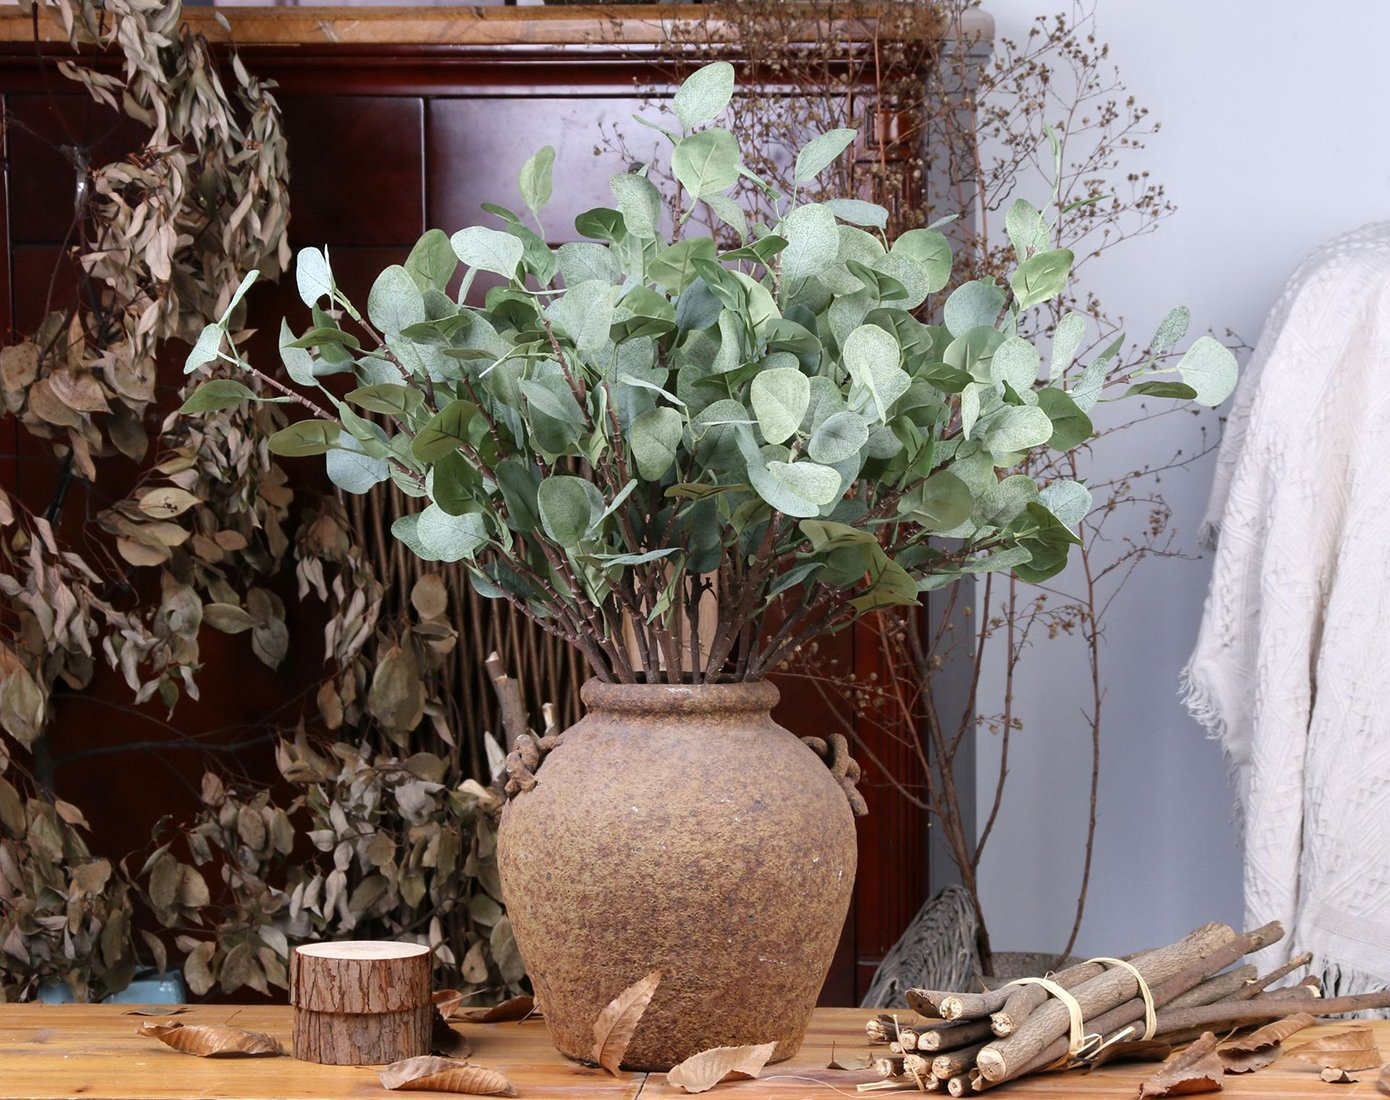 2PCS Bird Fiy 26 Artificial Eucalyptus Greenery Leaf Fake Eucalyptus Sprays Leave for Wedding Party Home Decor